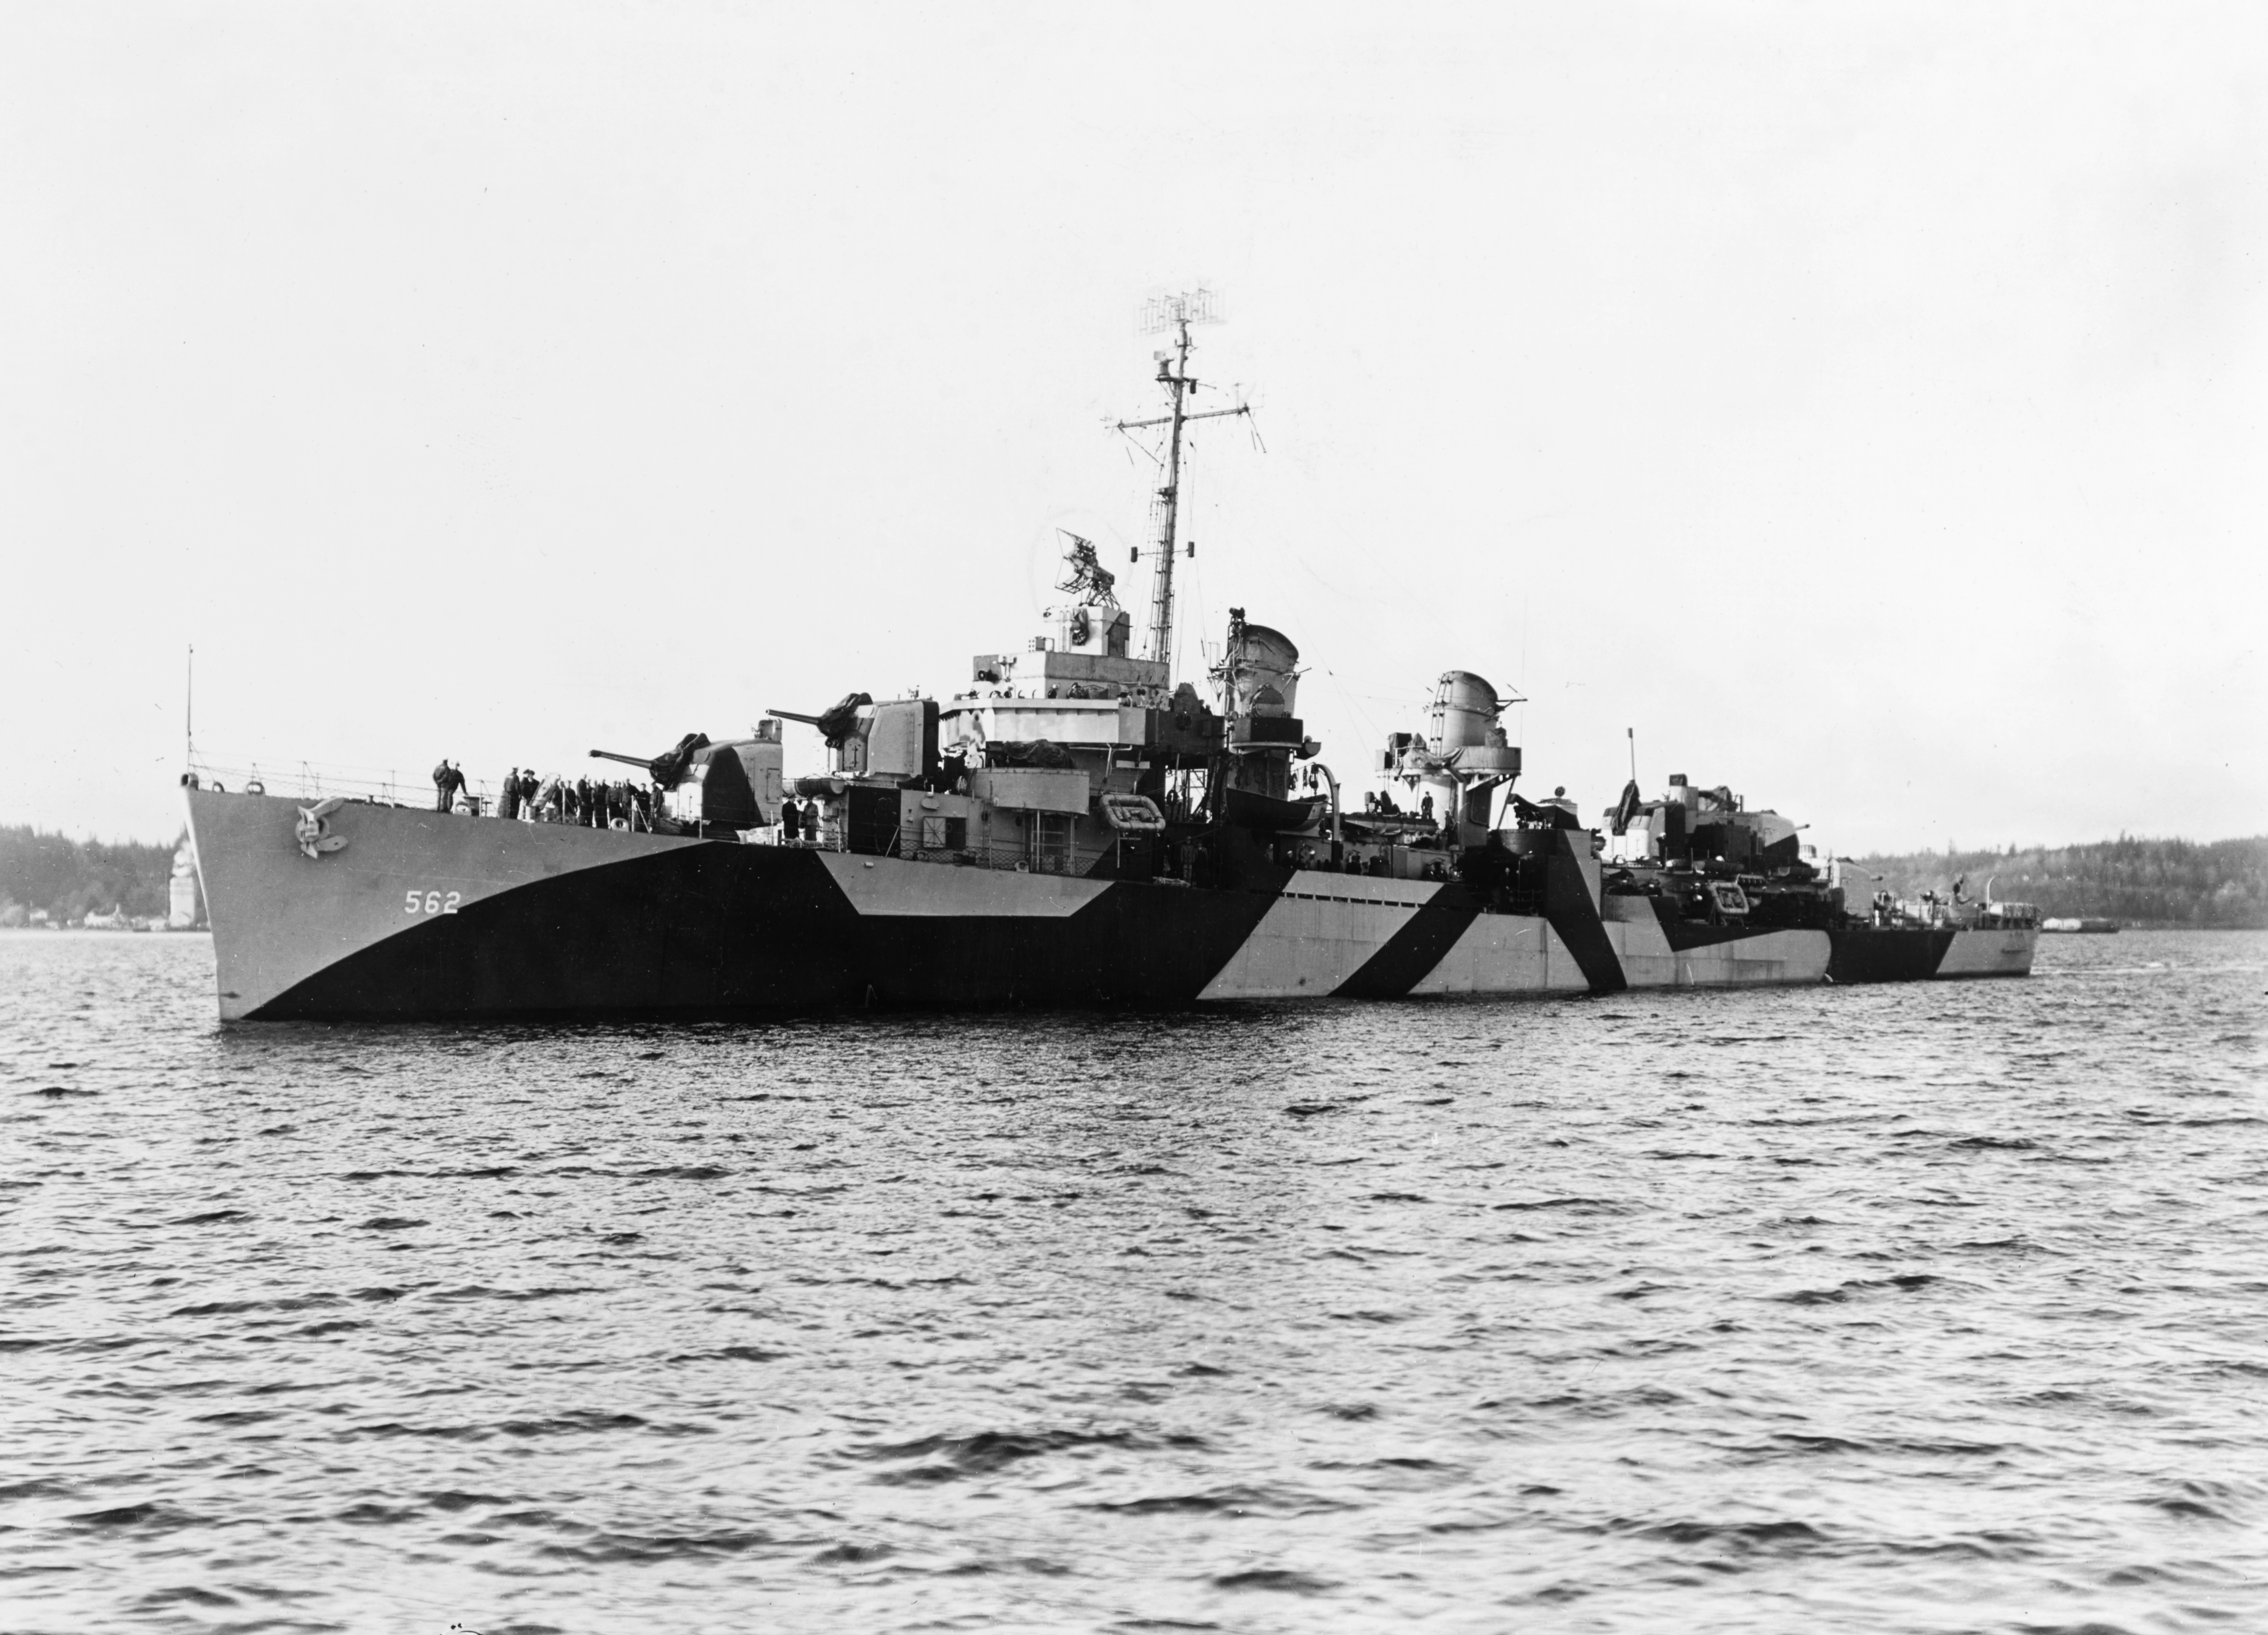 The USS Robinson off the Puget Sound Navy Yard, Washington, 8 April 1944. She is wearing Camouflage Measure 32, Design 13D.